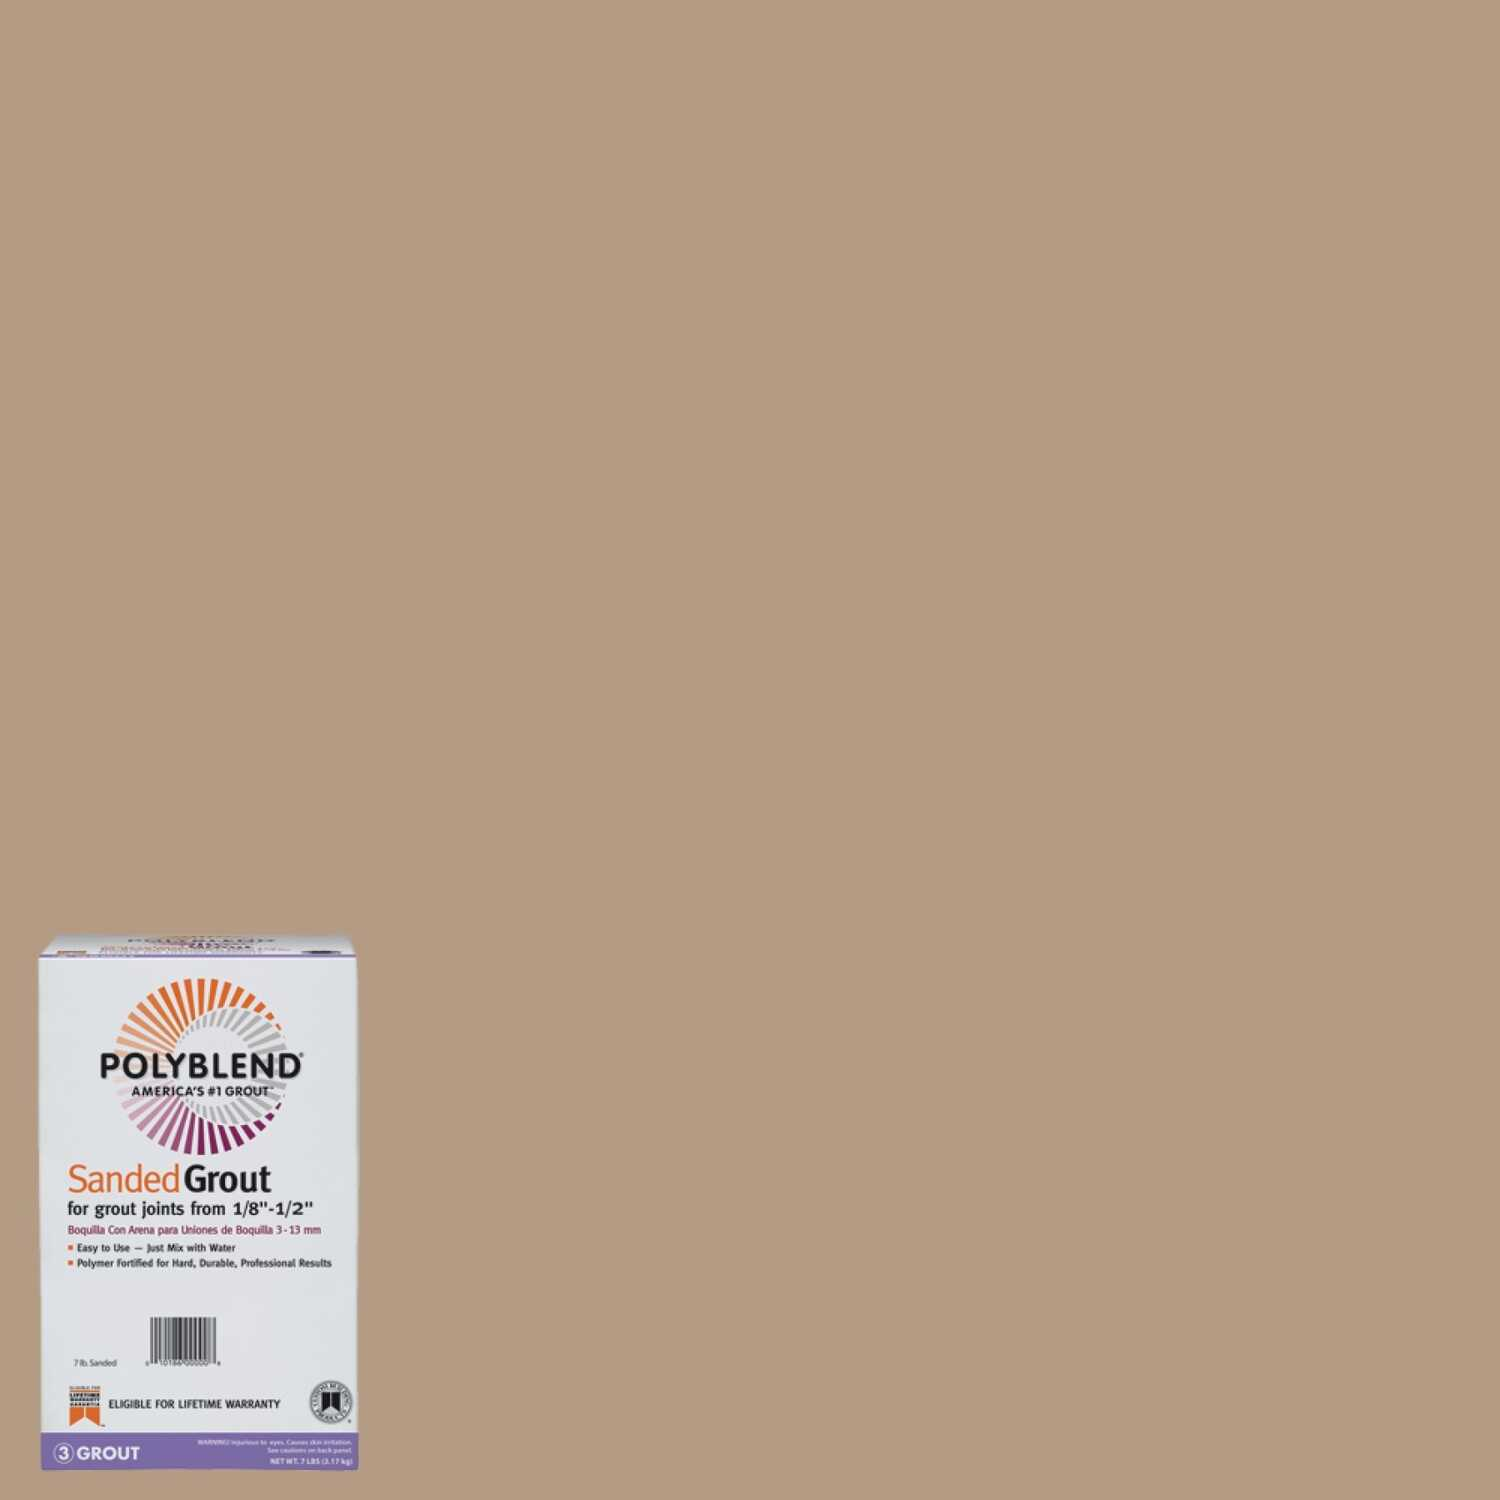 Custom Building Products  Polyblend  Indoor and Outdoor  Sandstone  Grout  7 lb.